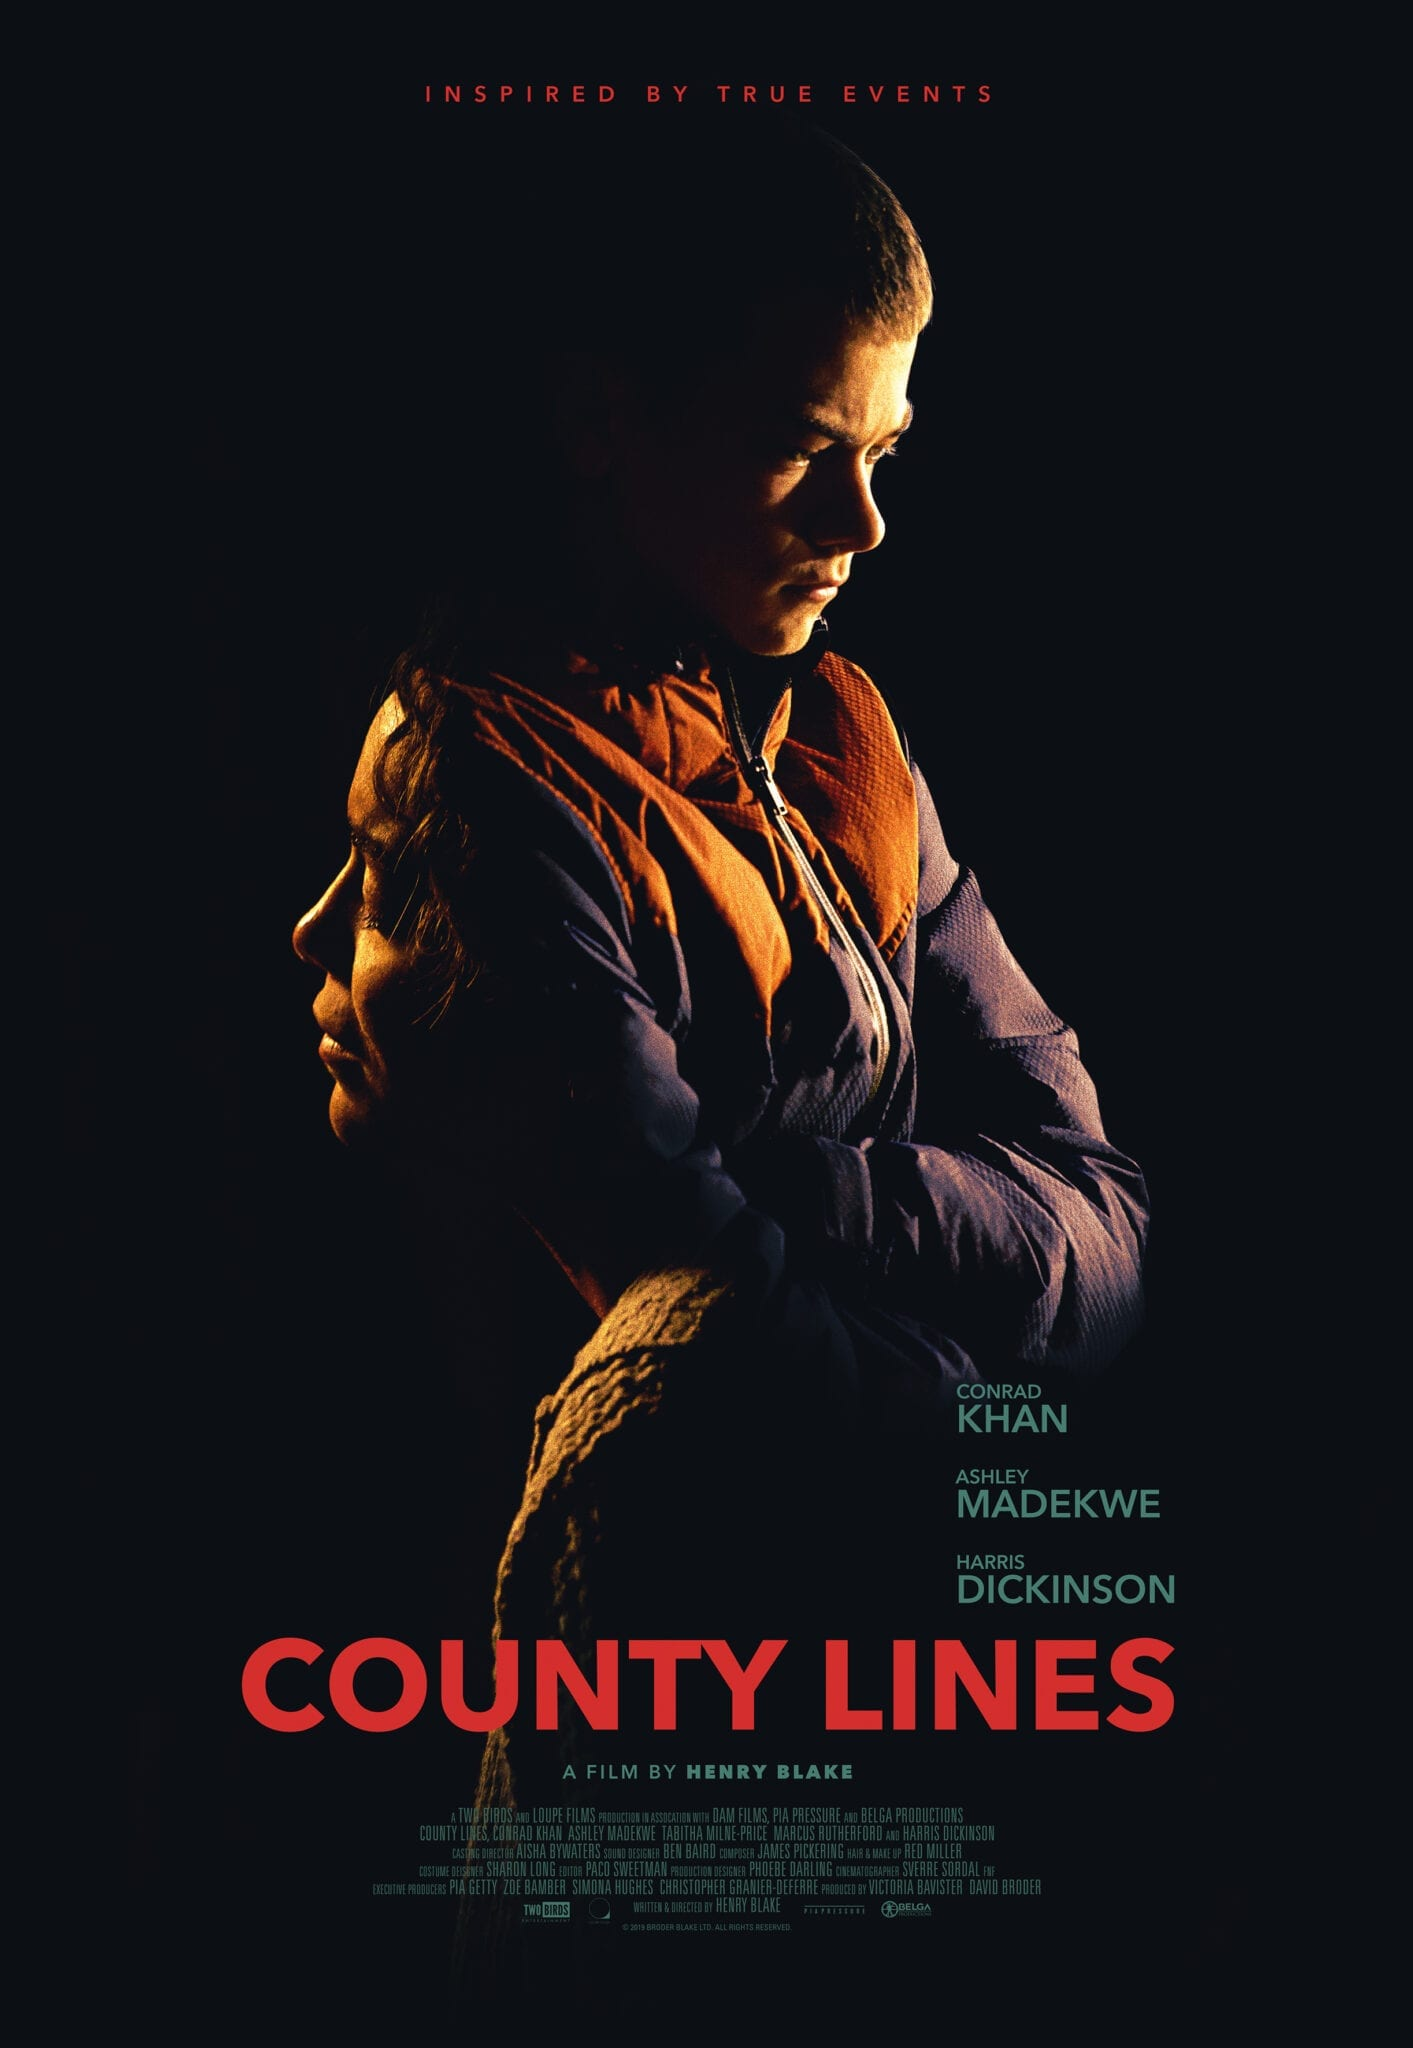 London Film Festival Review: County Lines